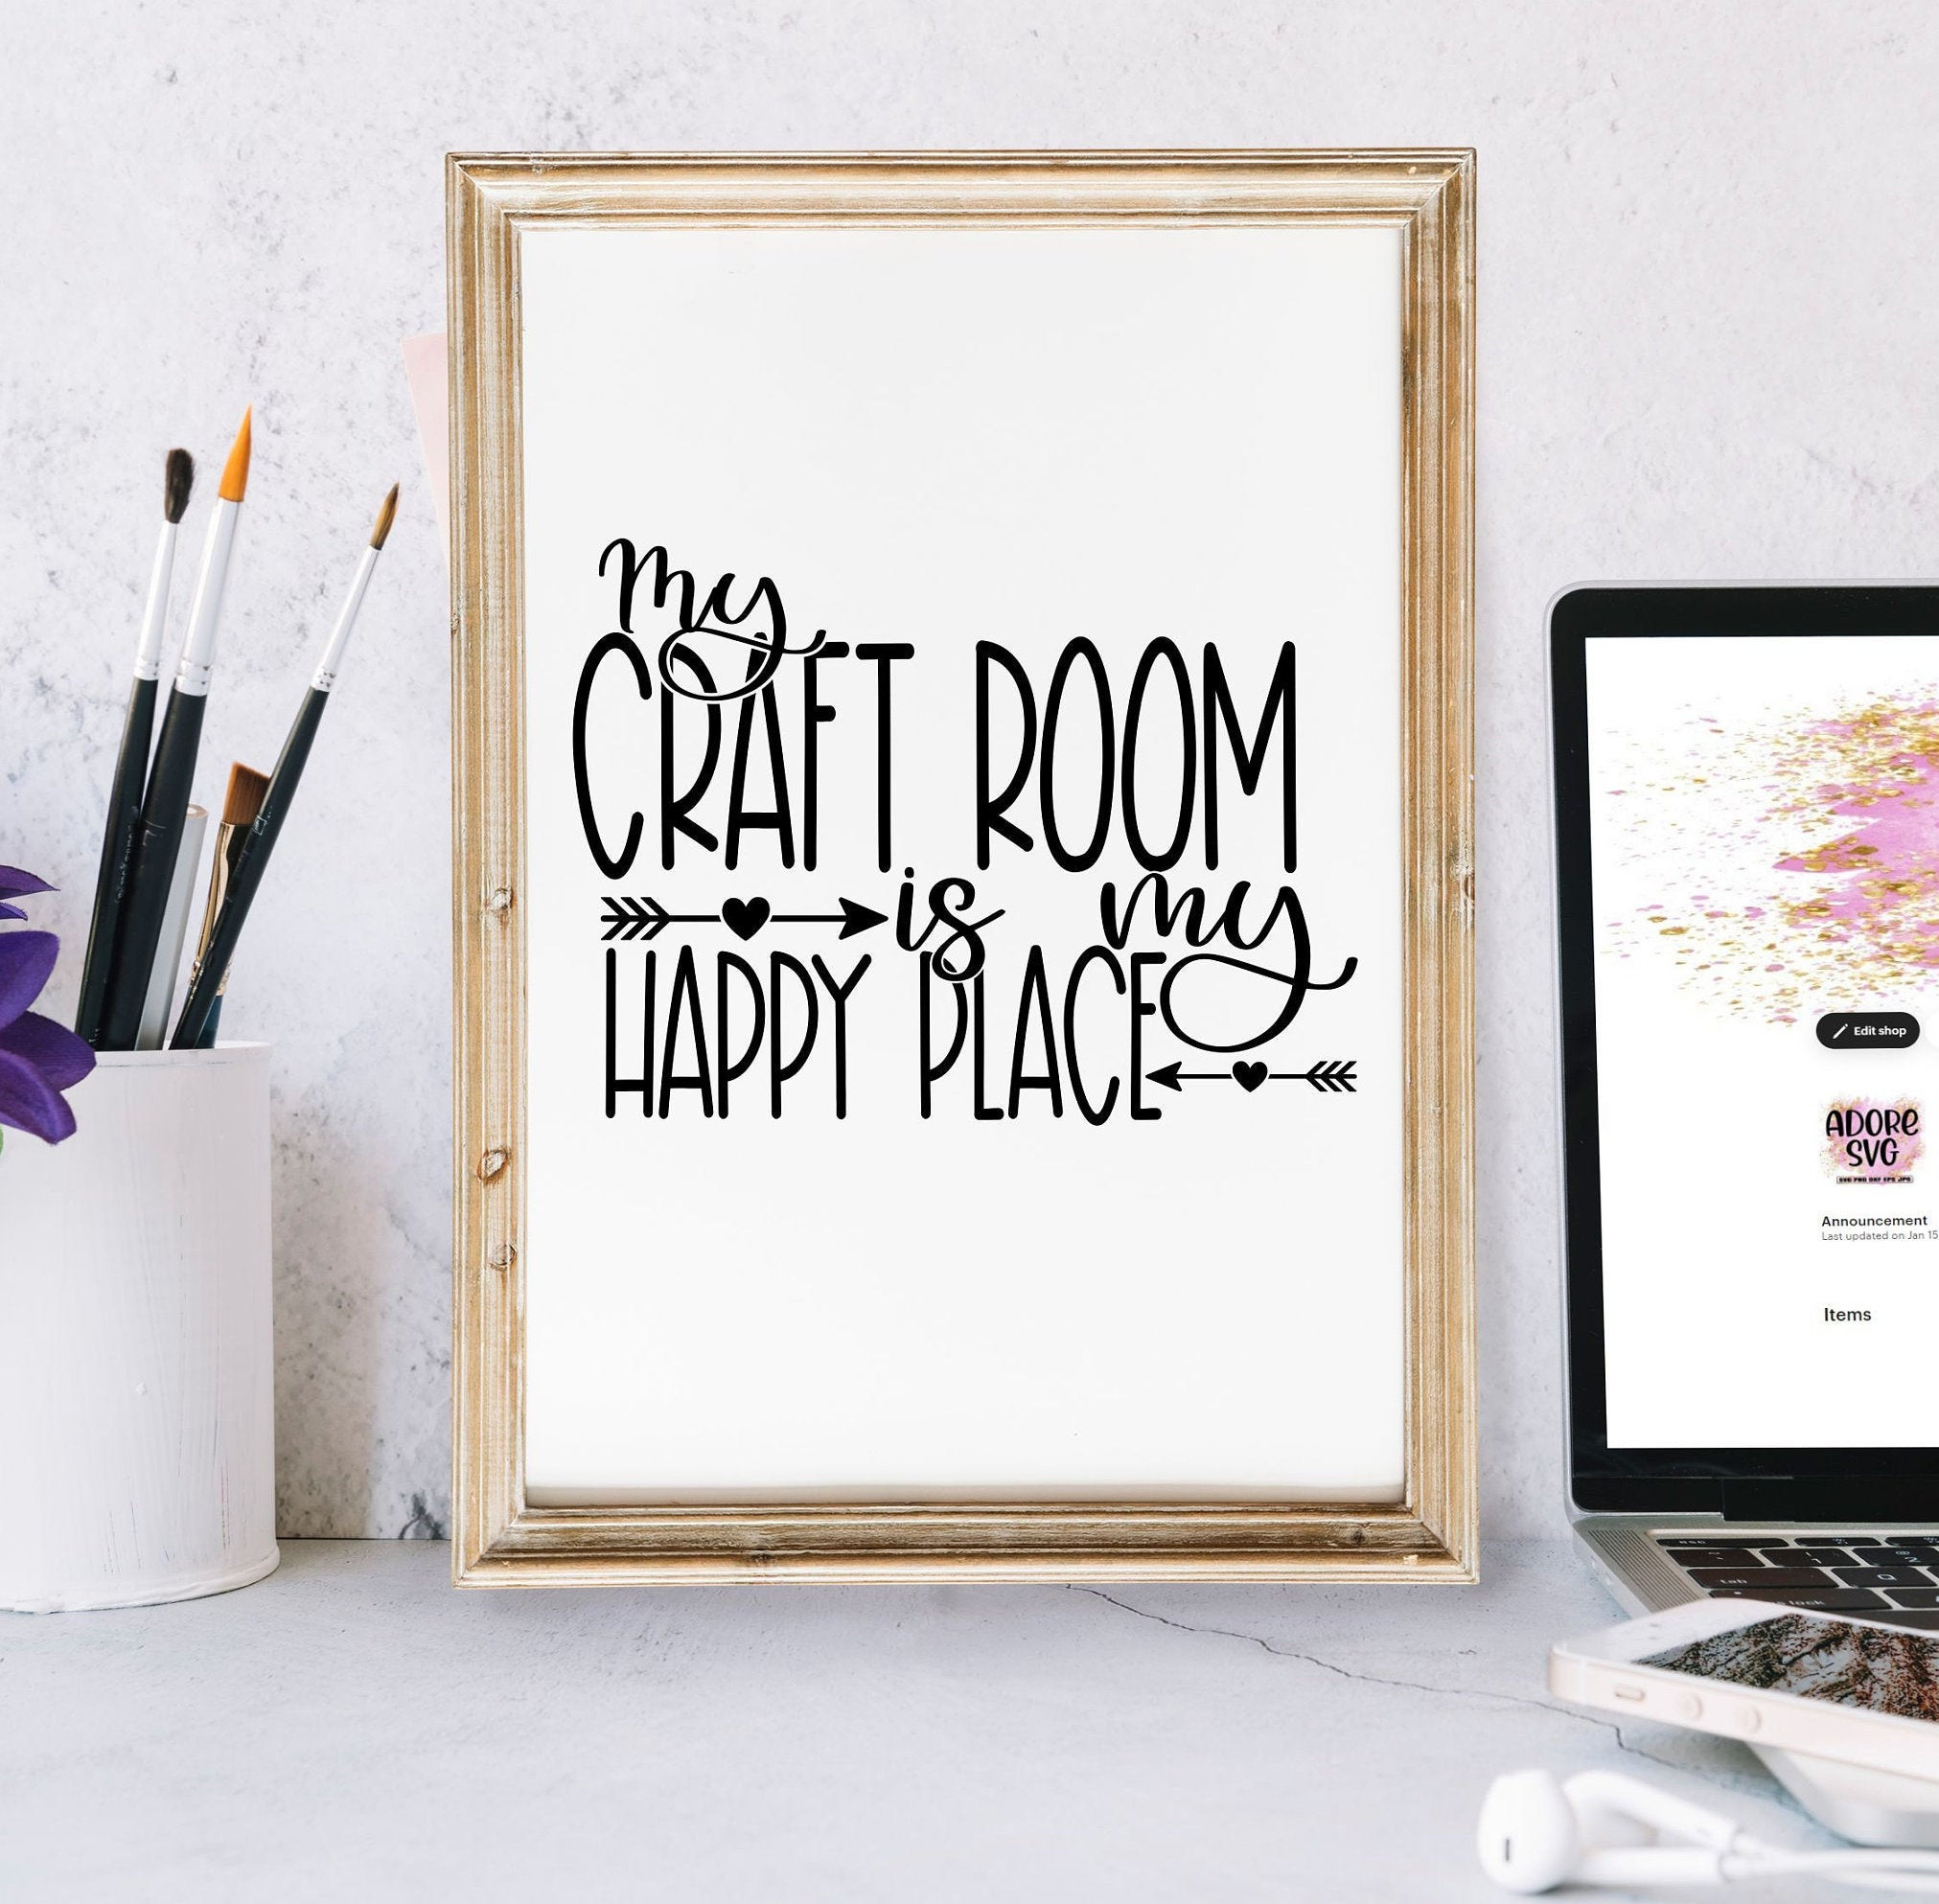 Crafting-svgmy-craft-room-is-my-happy-place-svg-happy-place-svg-crafty-saying-craft-svg-craft-svg-designs-craft-cut-file-craft-svg-60514046